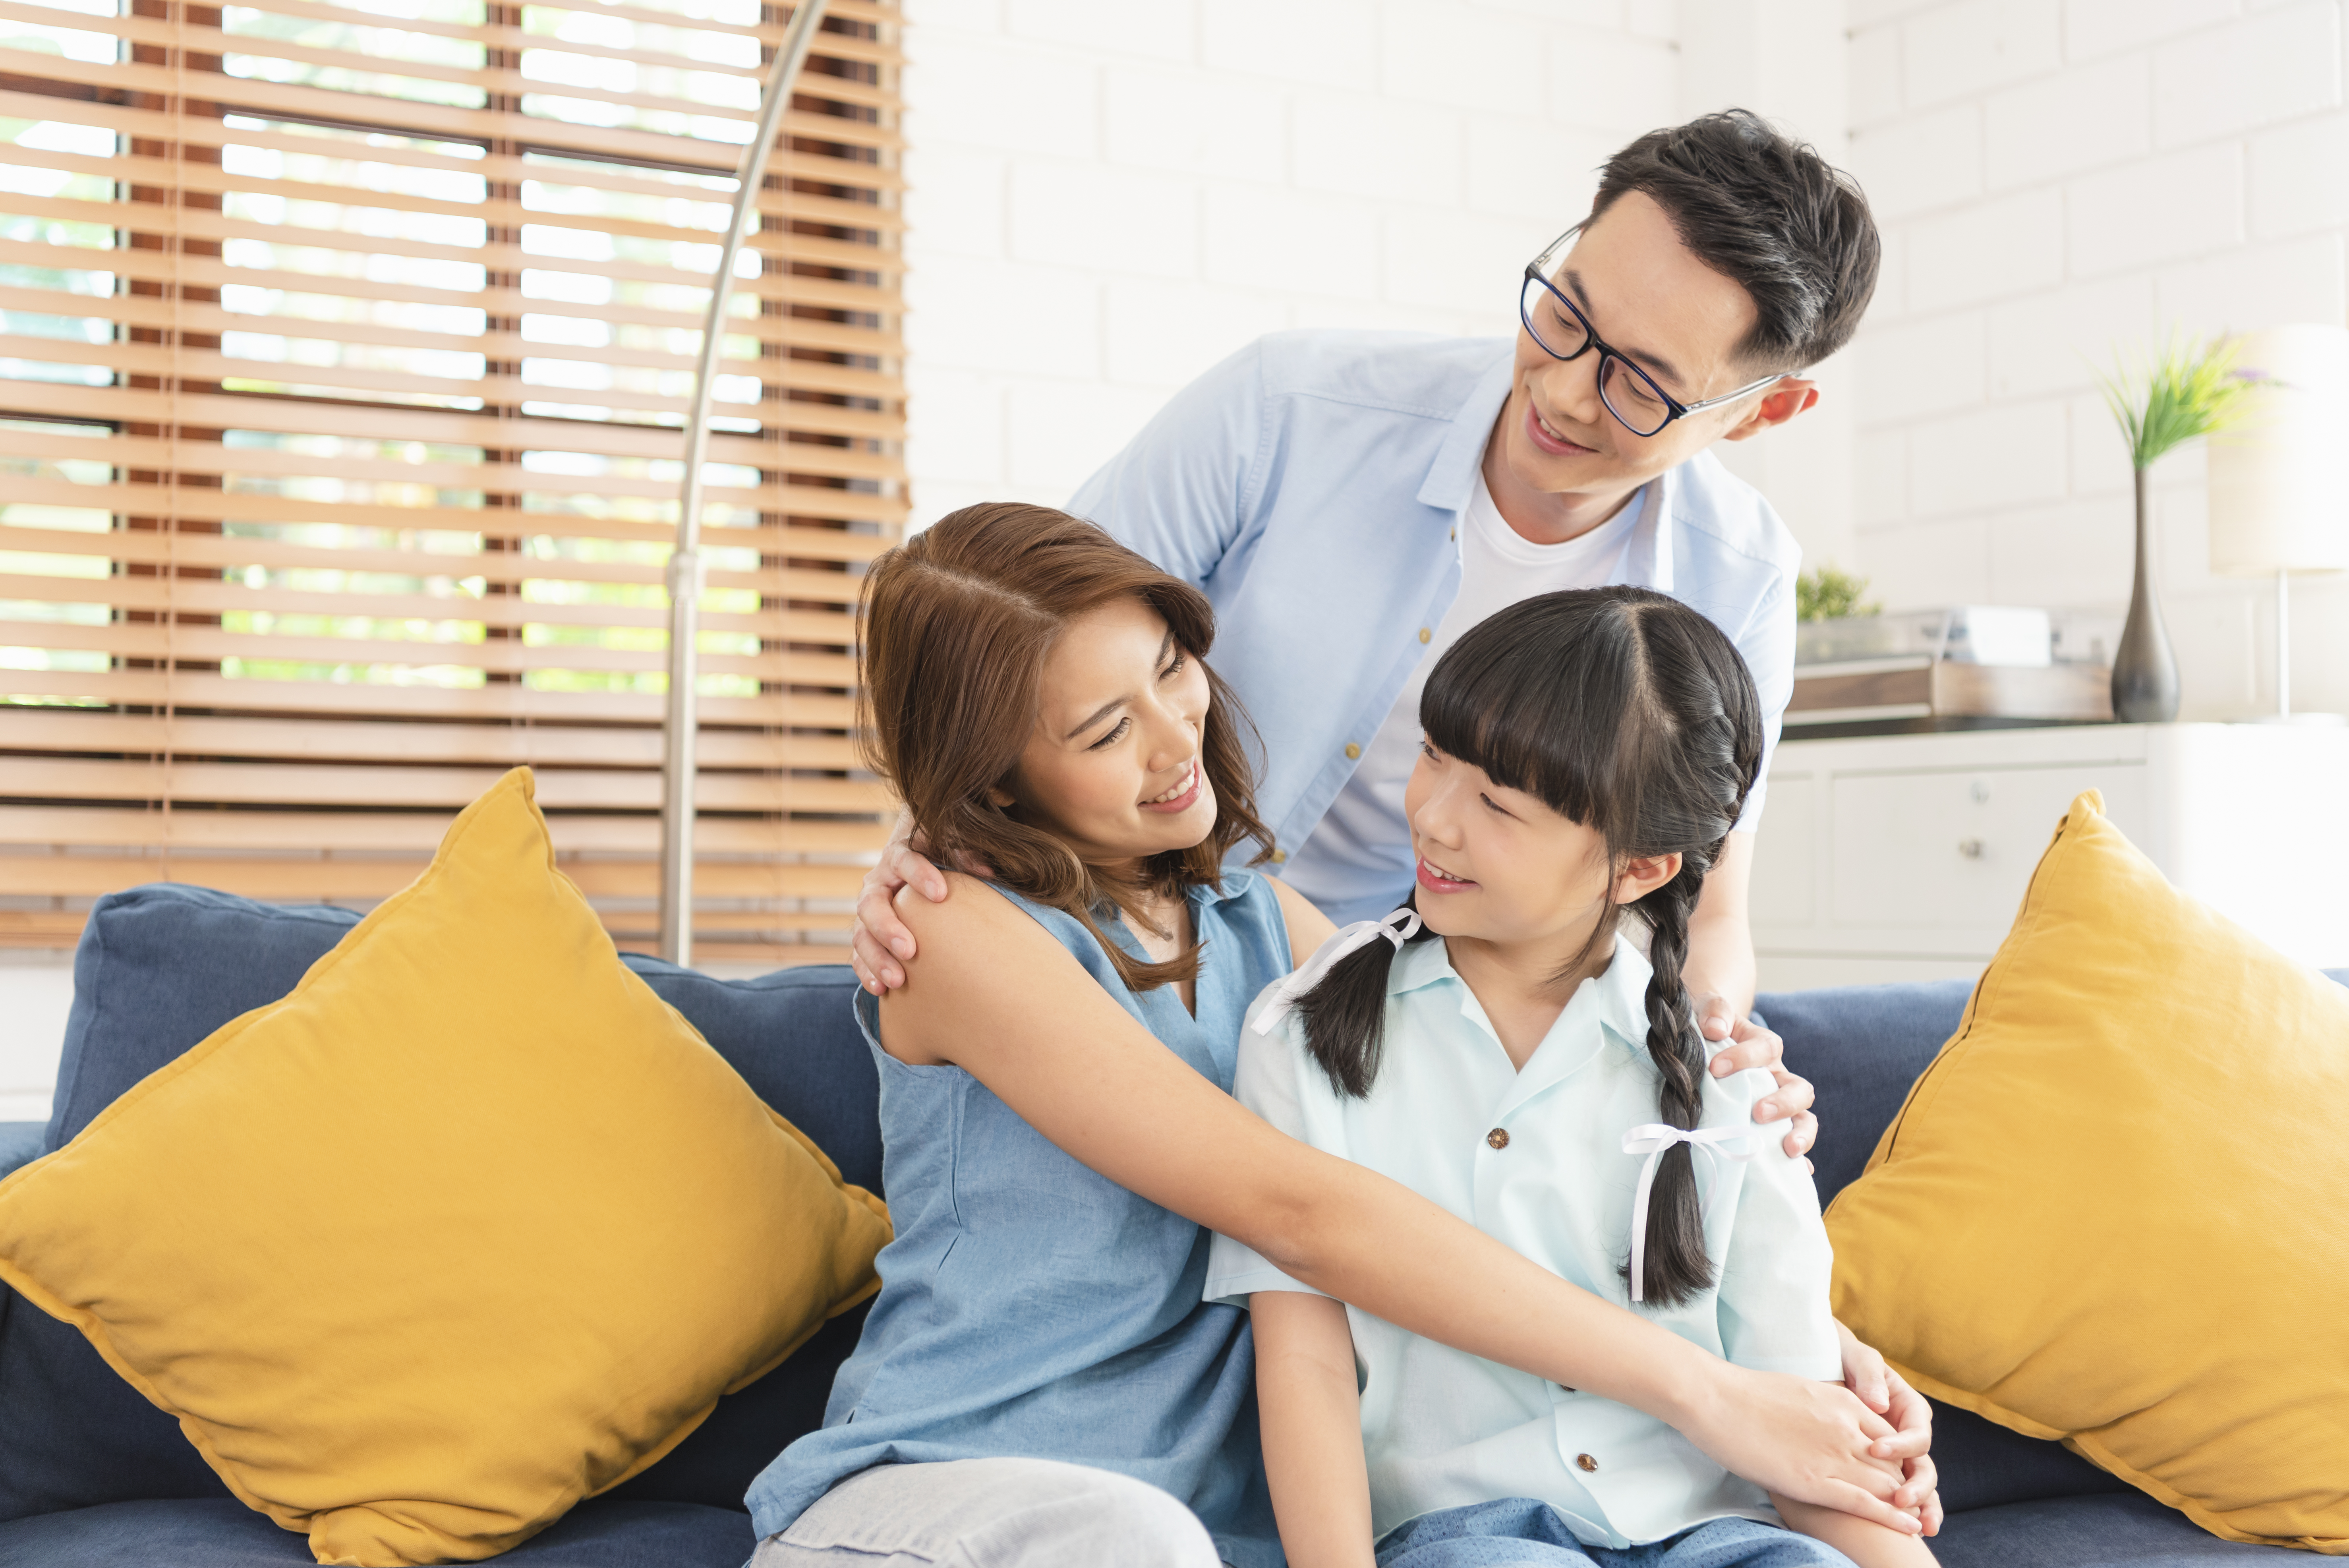 Happy Asian family hugging together on sofa at home living room.